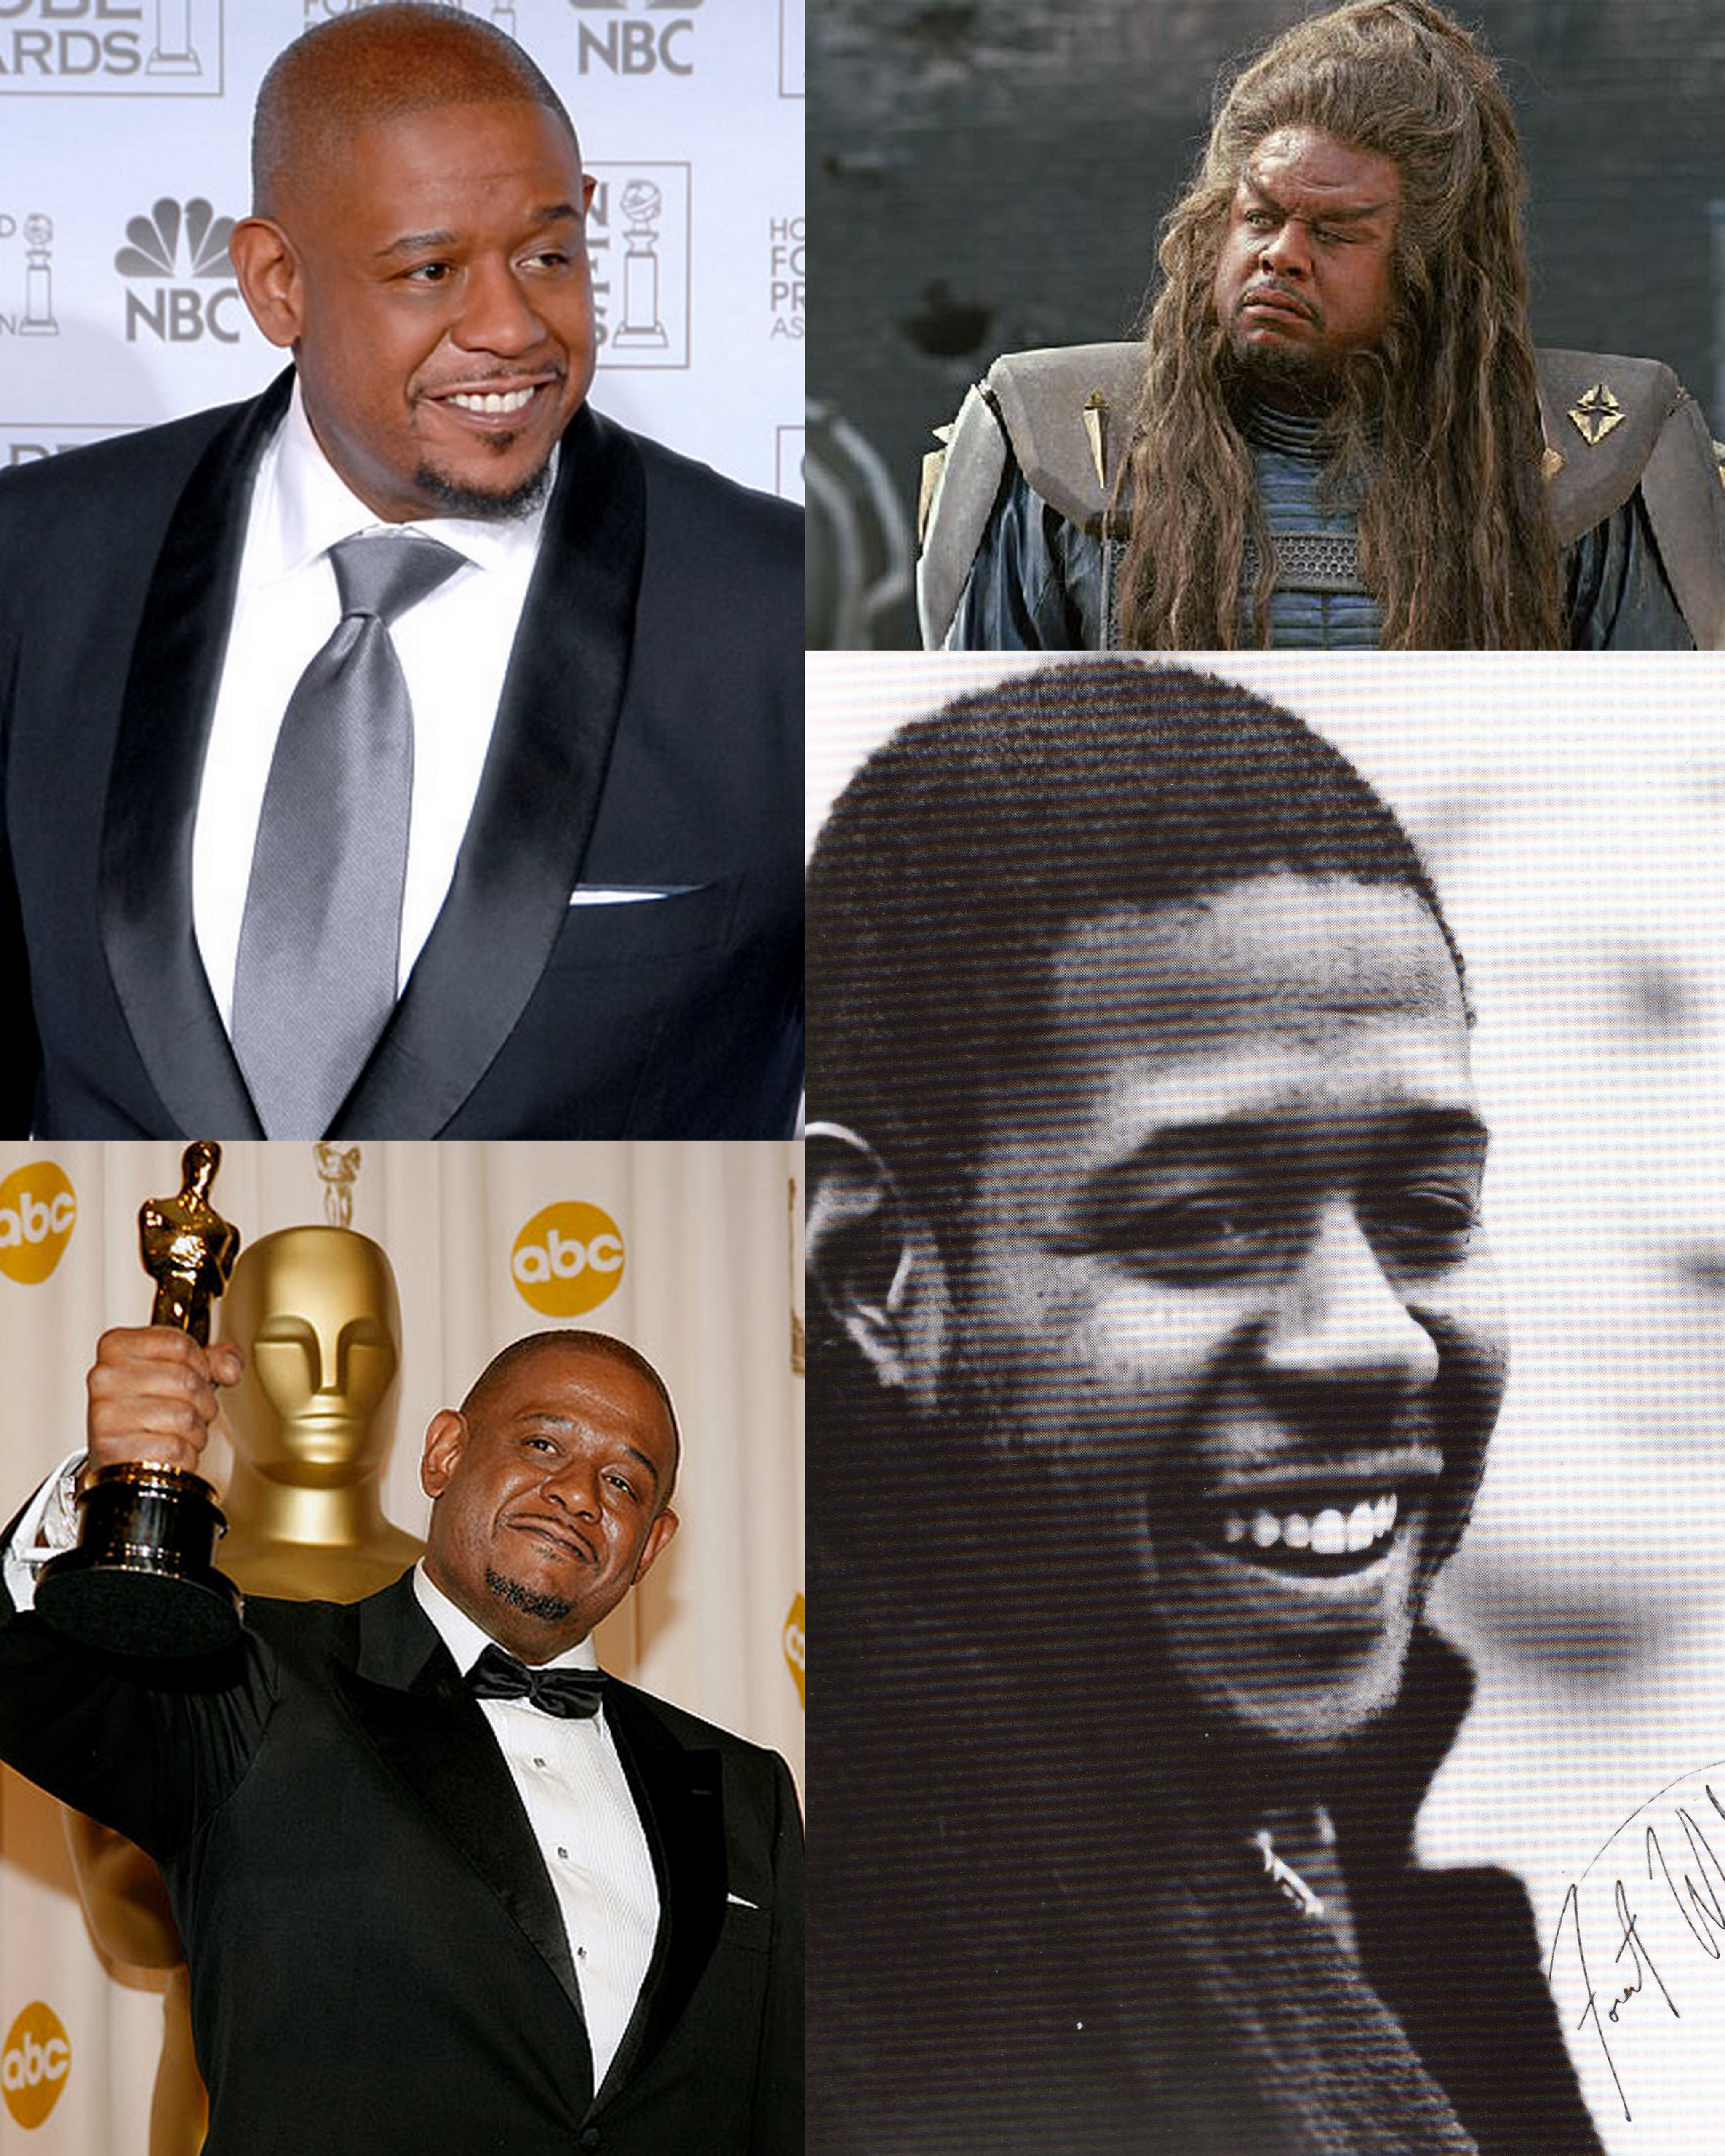 Forest Whitaker (48):